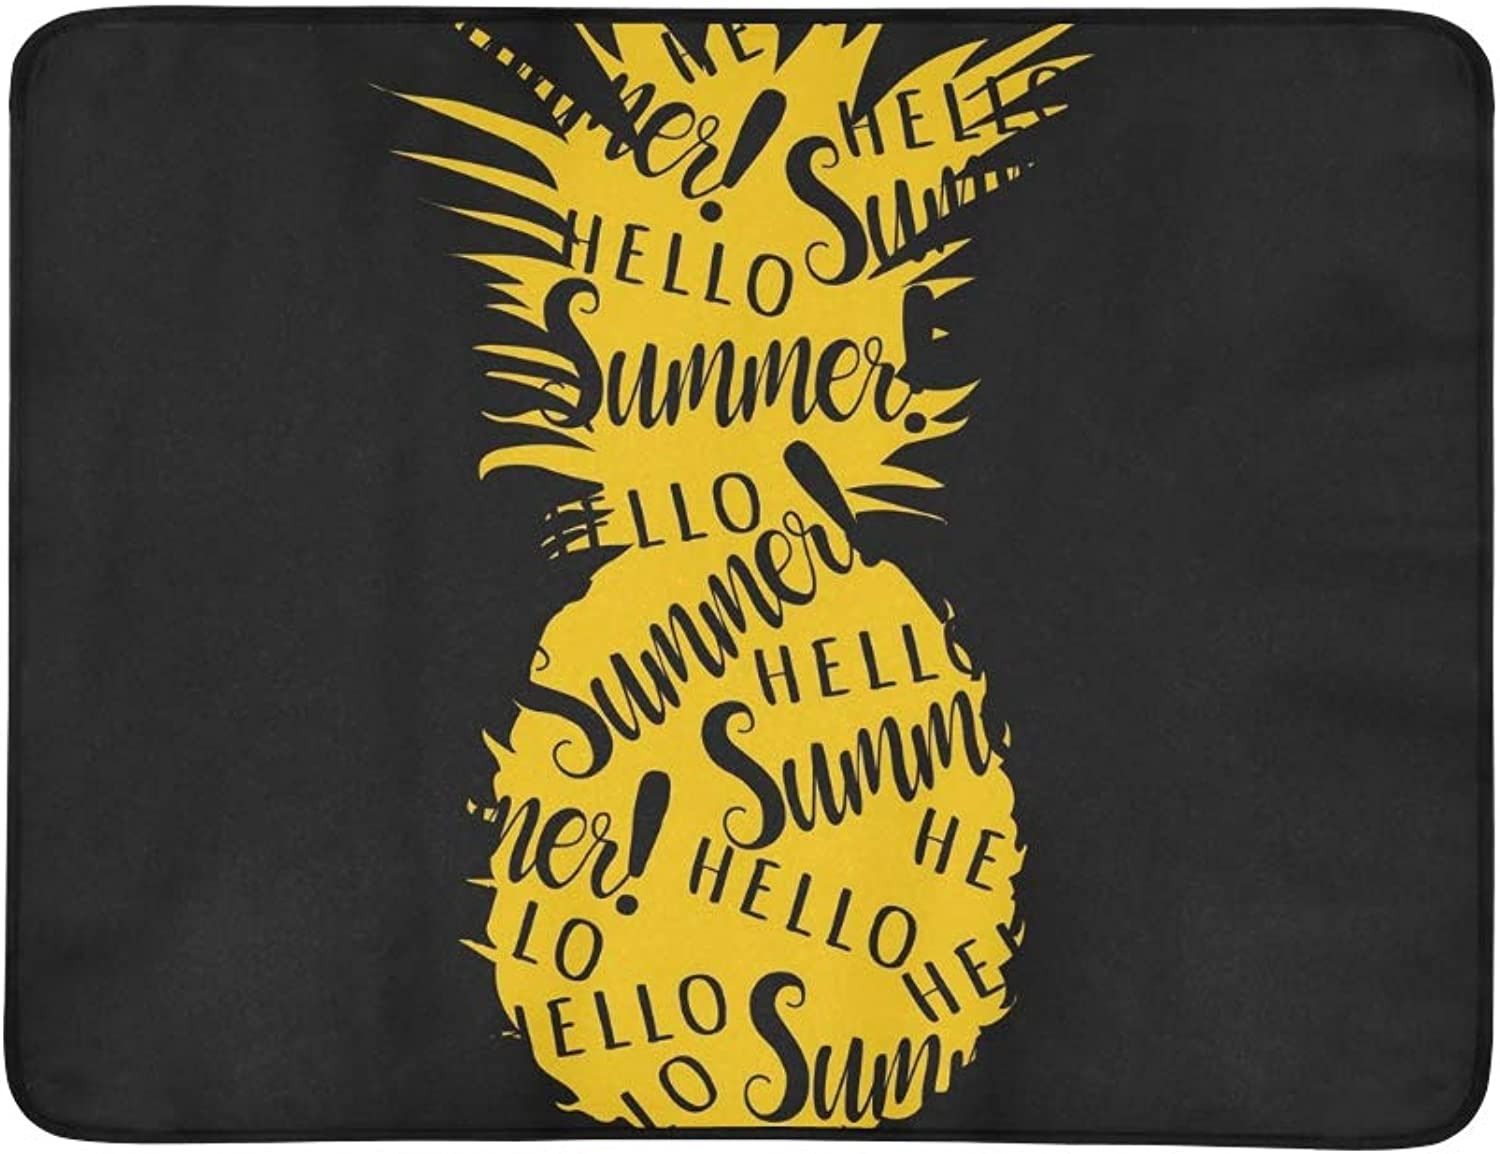 Pineapple Hello Summer Lettering Portable and Foldable Blanket Mat 60x78 Inch Handy Mat for Camping Picnic Beach Indoor Outdoor Travel